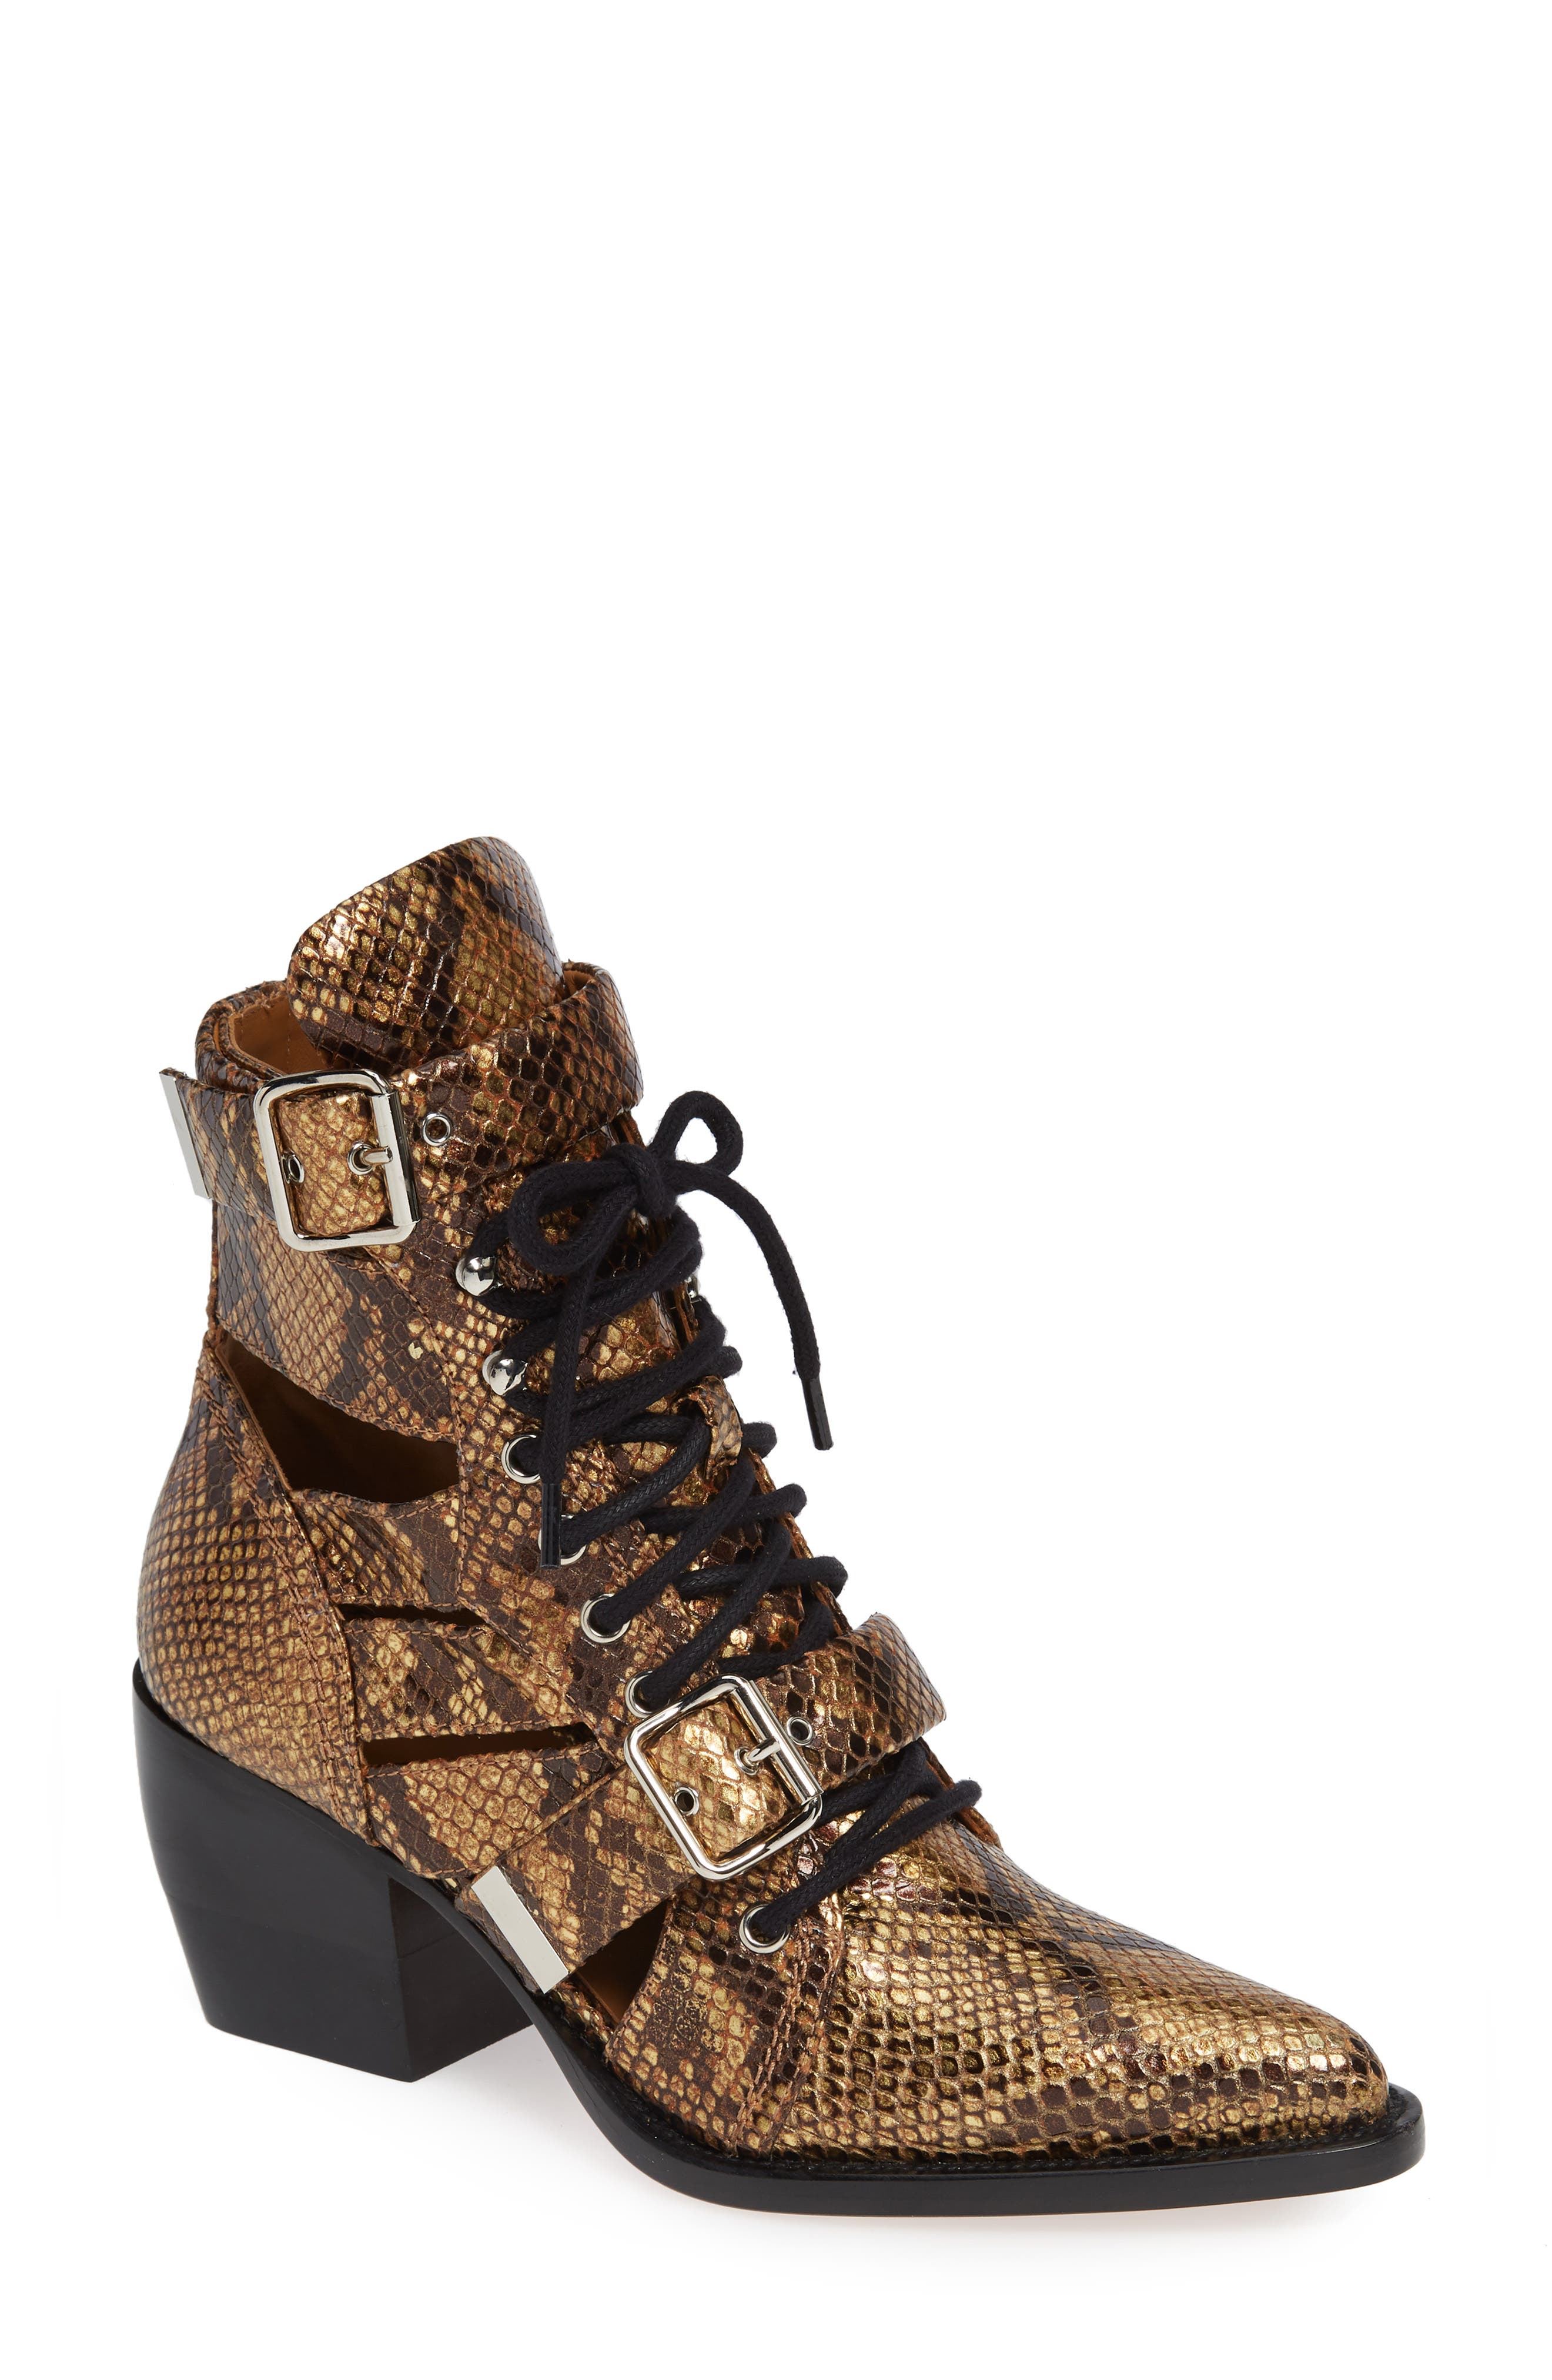 Chloe Rylee Pointy Toe Cage Boot, Size - (Nordstrom Exclusive)